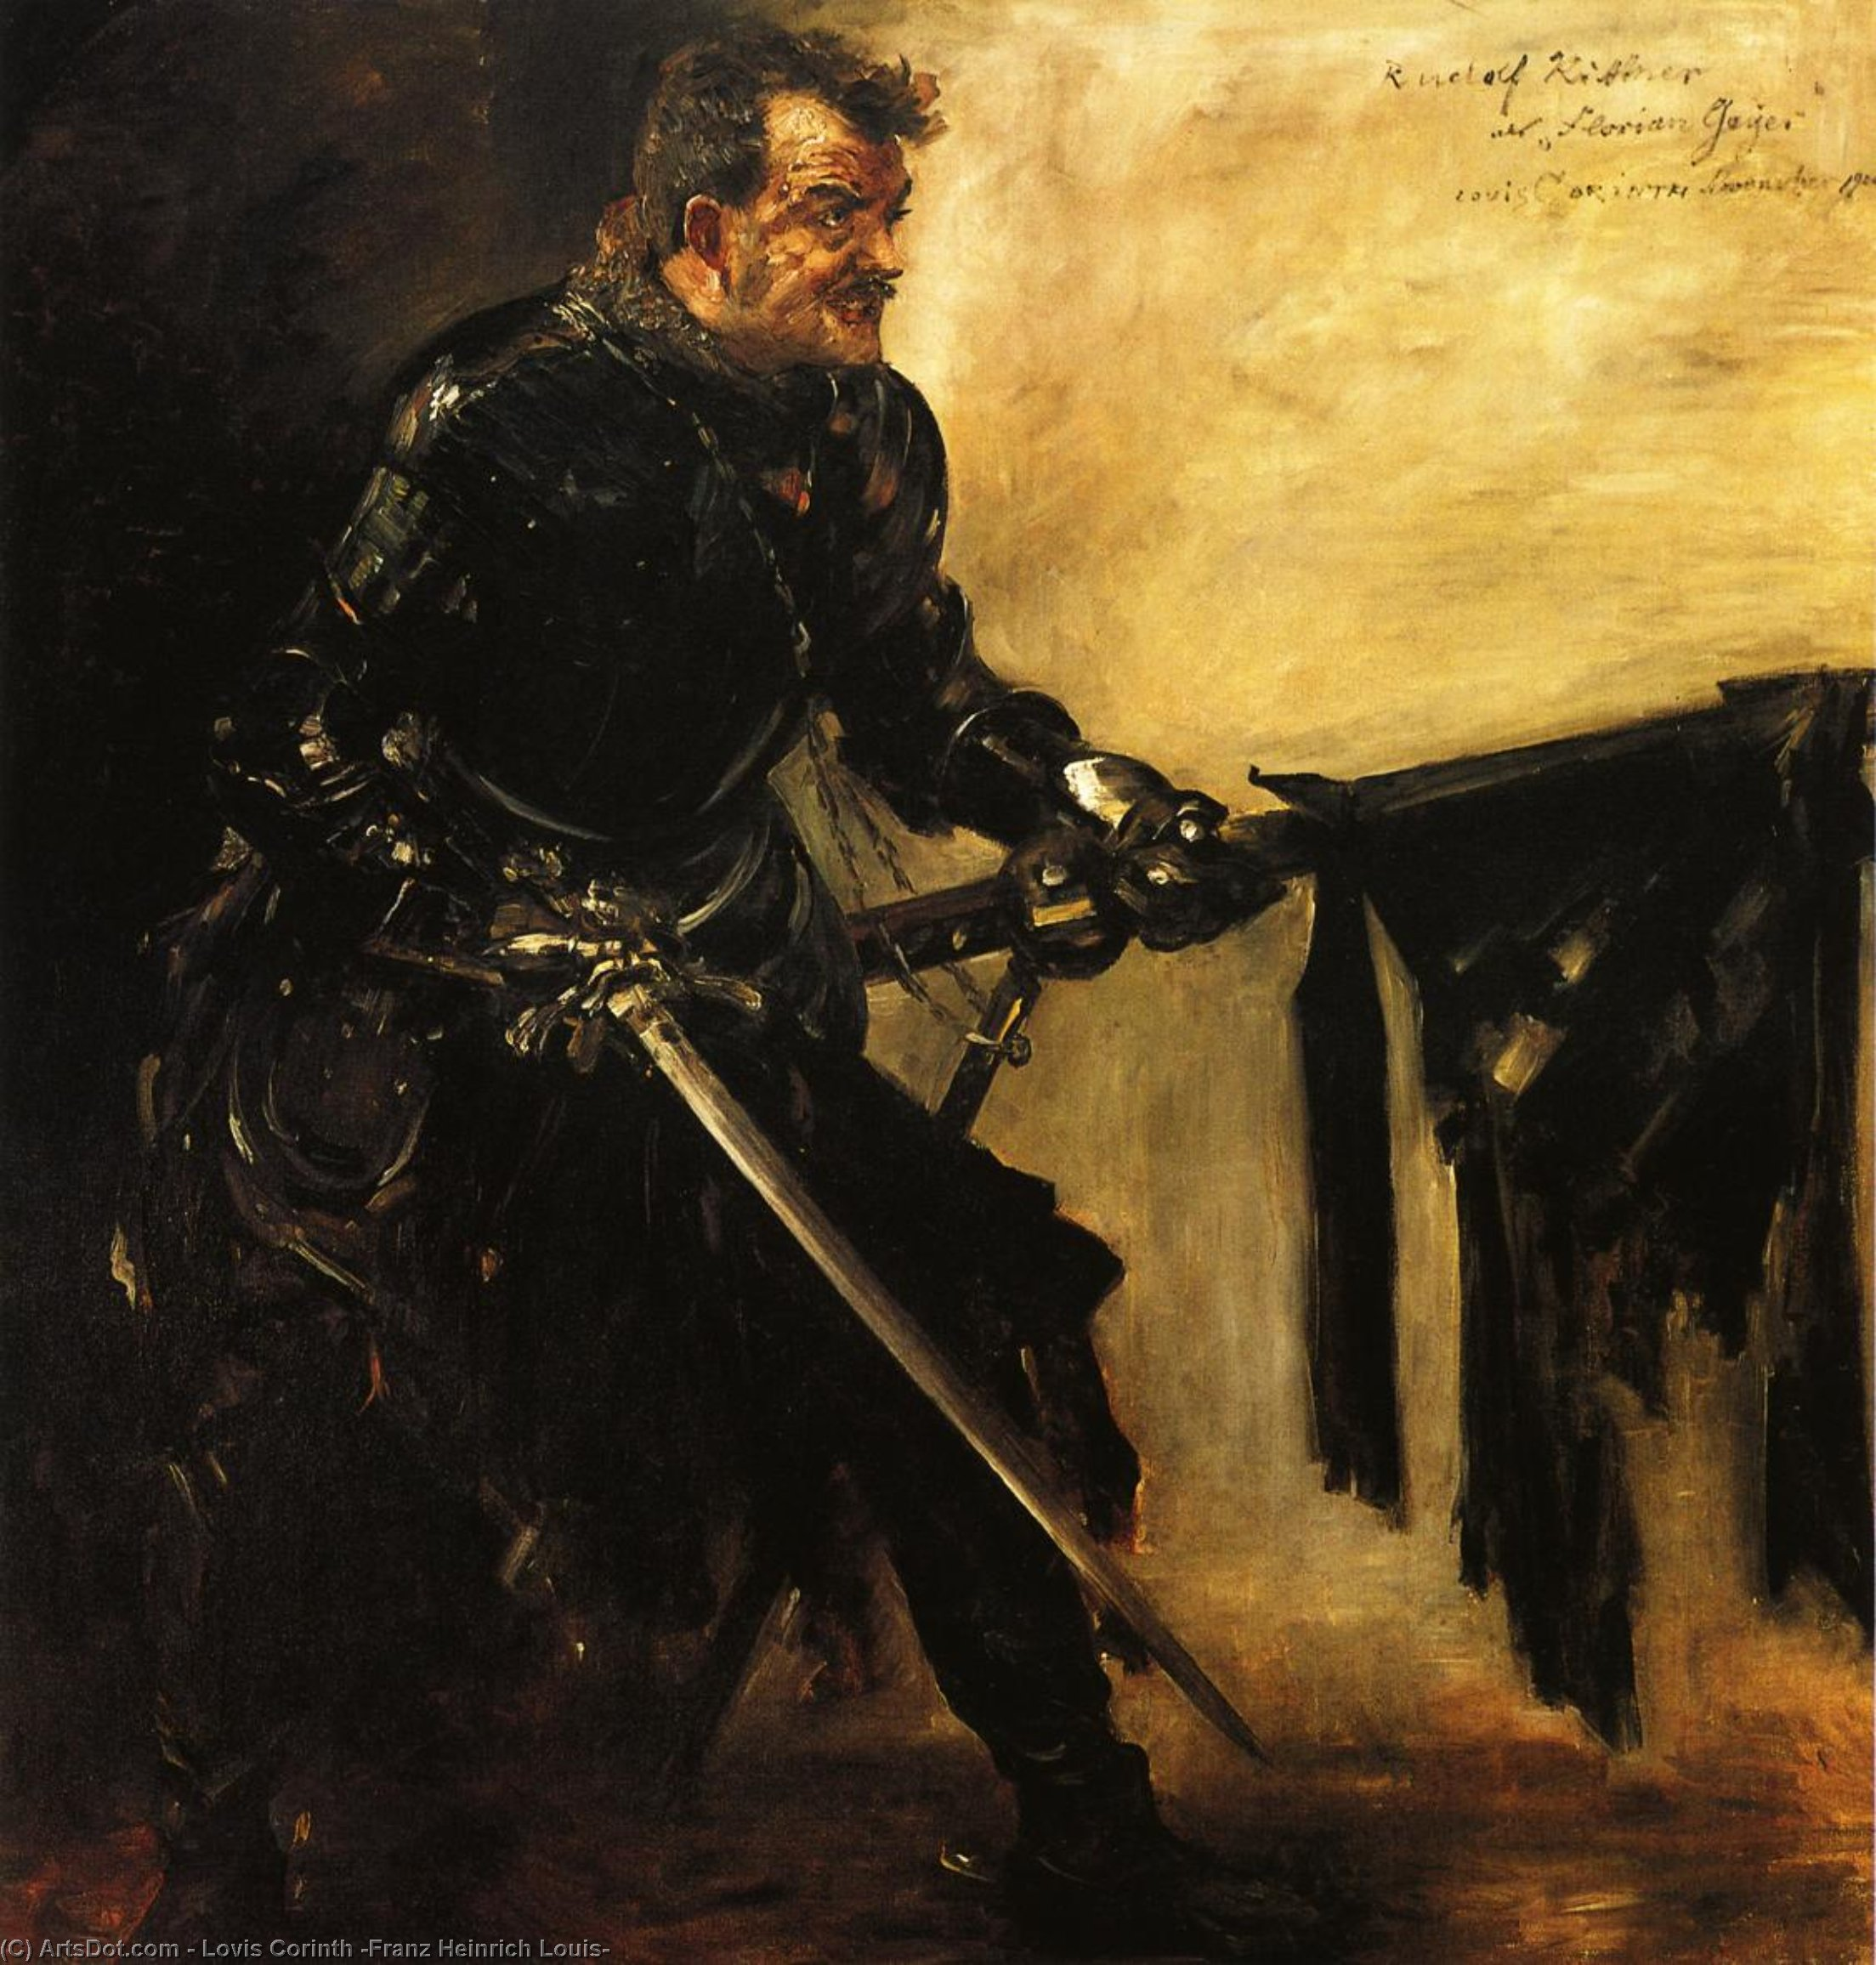 Rudolph Rittner as Florian Geyer, First Version, Oil On Canvas by Lovis Corinth (Franz Heinrich Louis) (1858-1925, Netherlands)